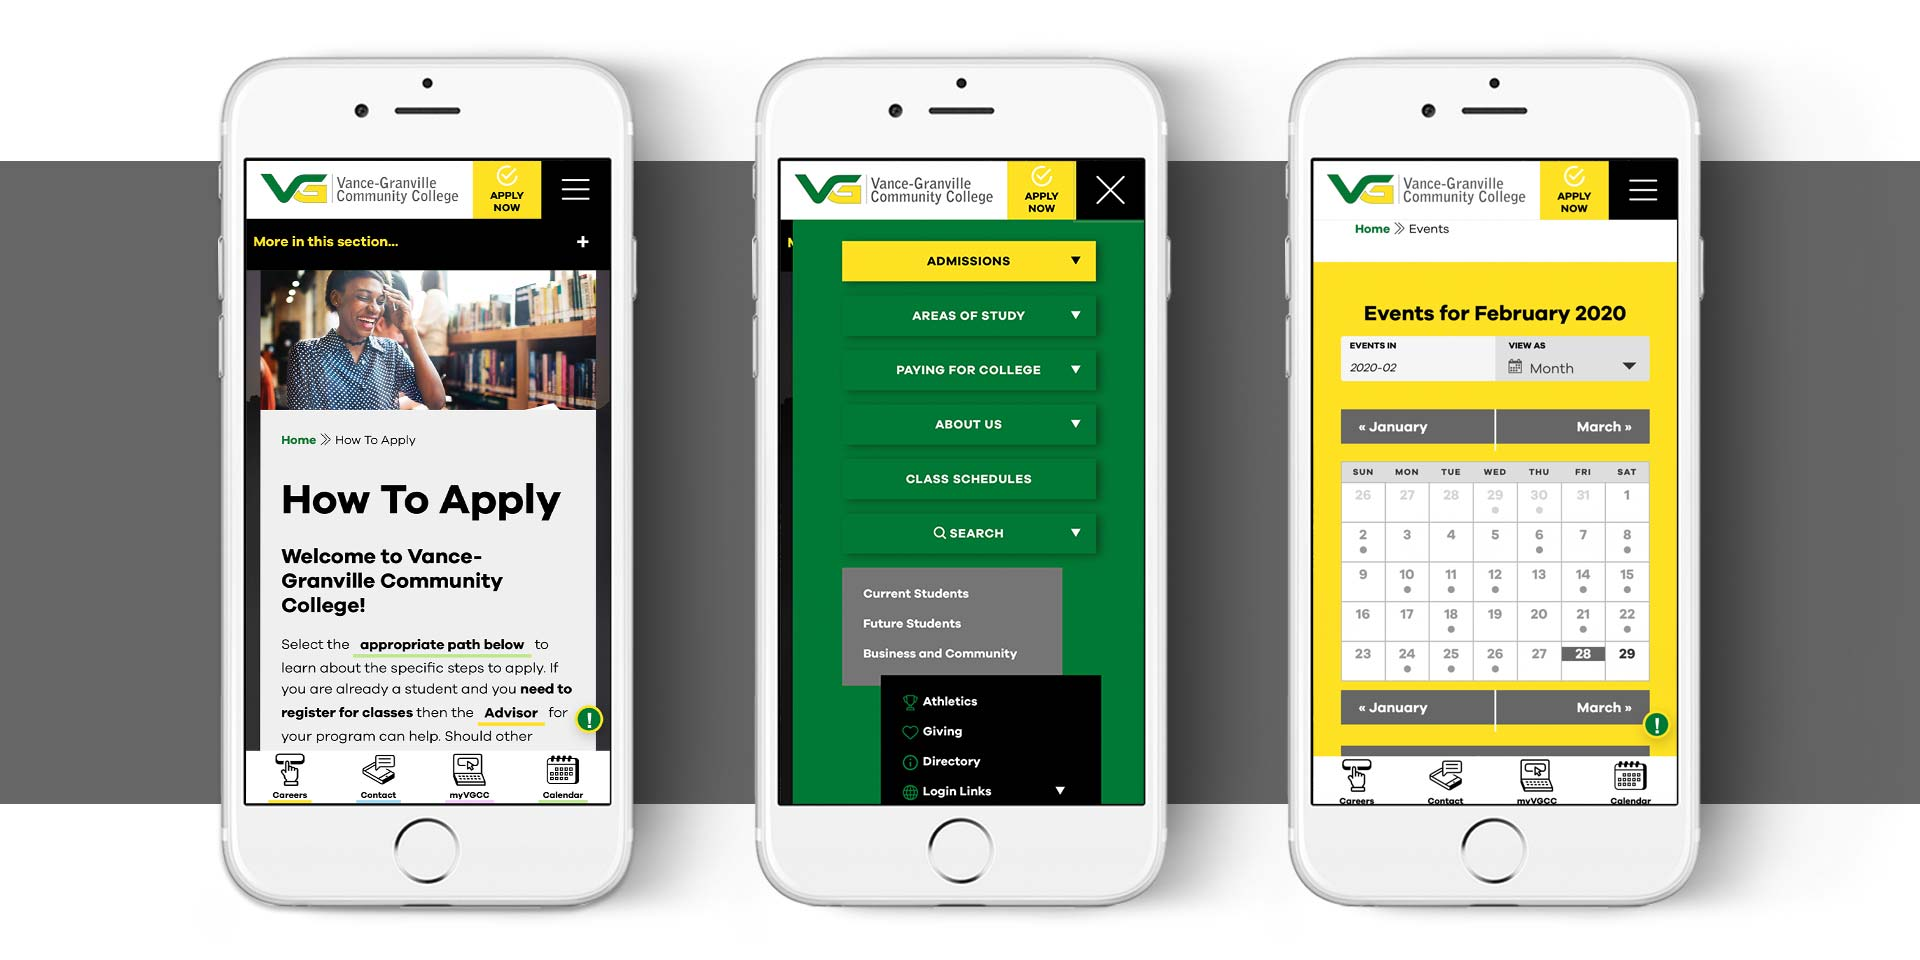 Vance Granville Community College - Website Design by Springer Studios, Wilmington, NC